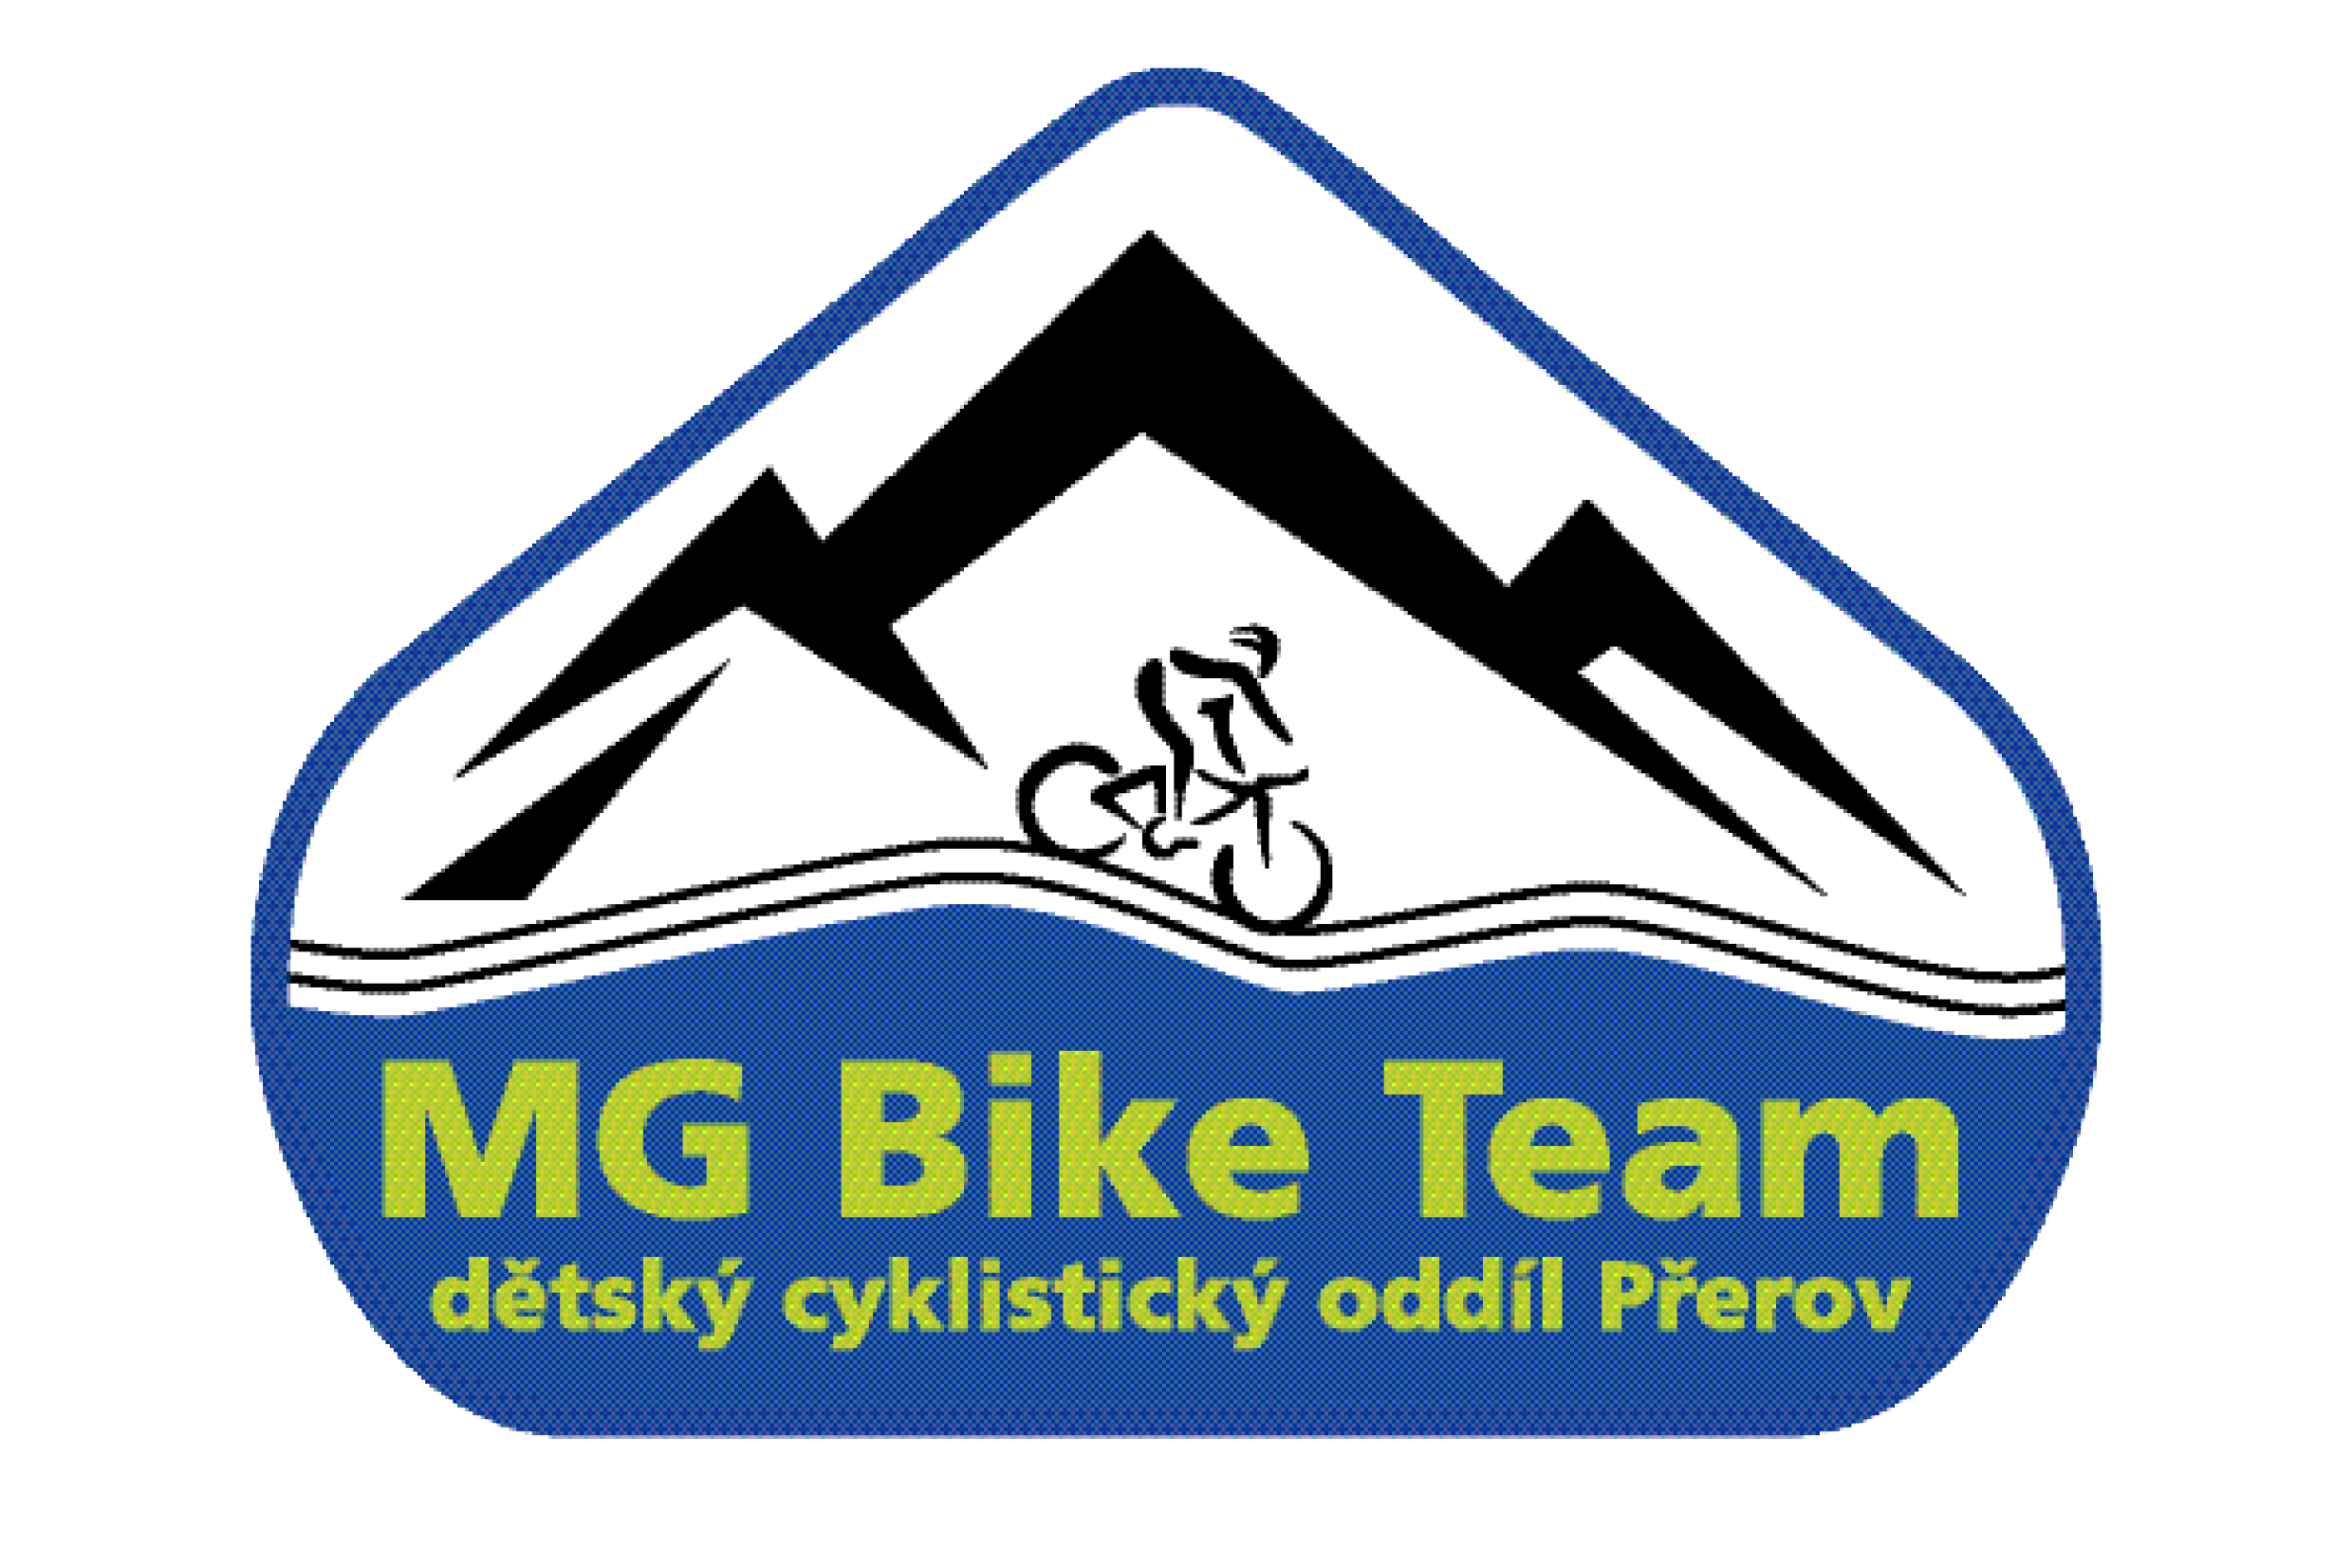 MG Bike team logo